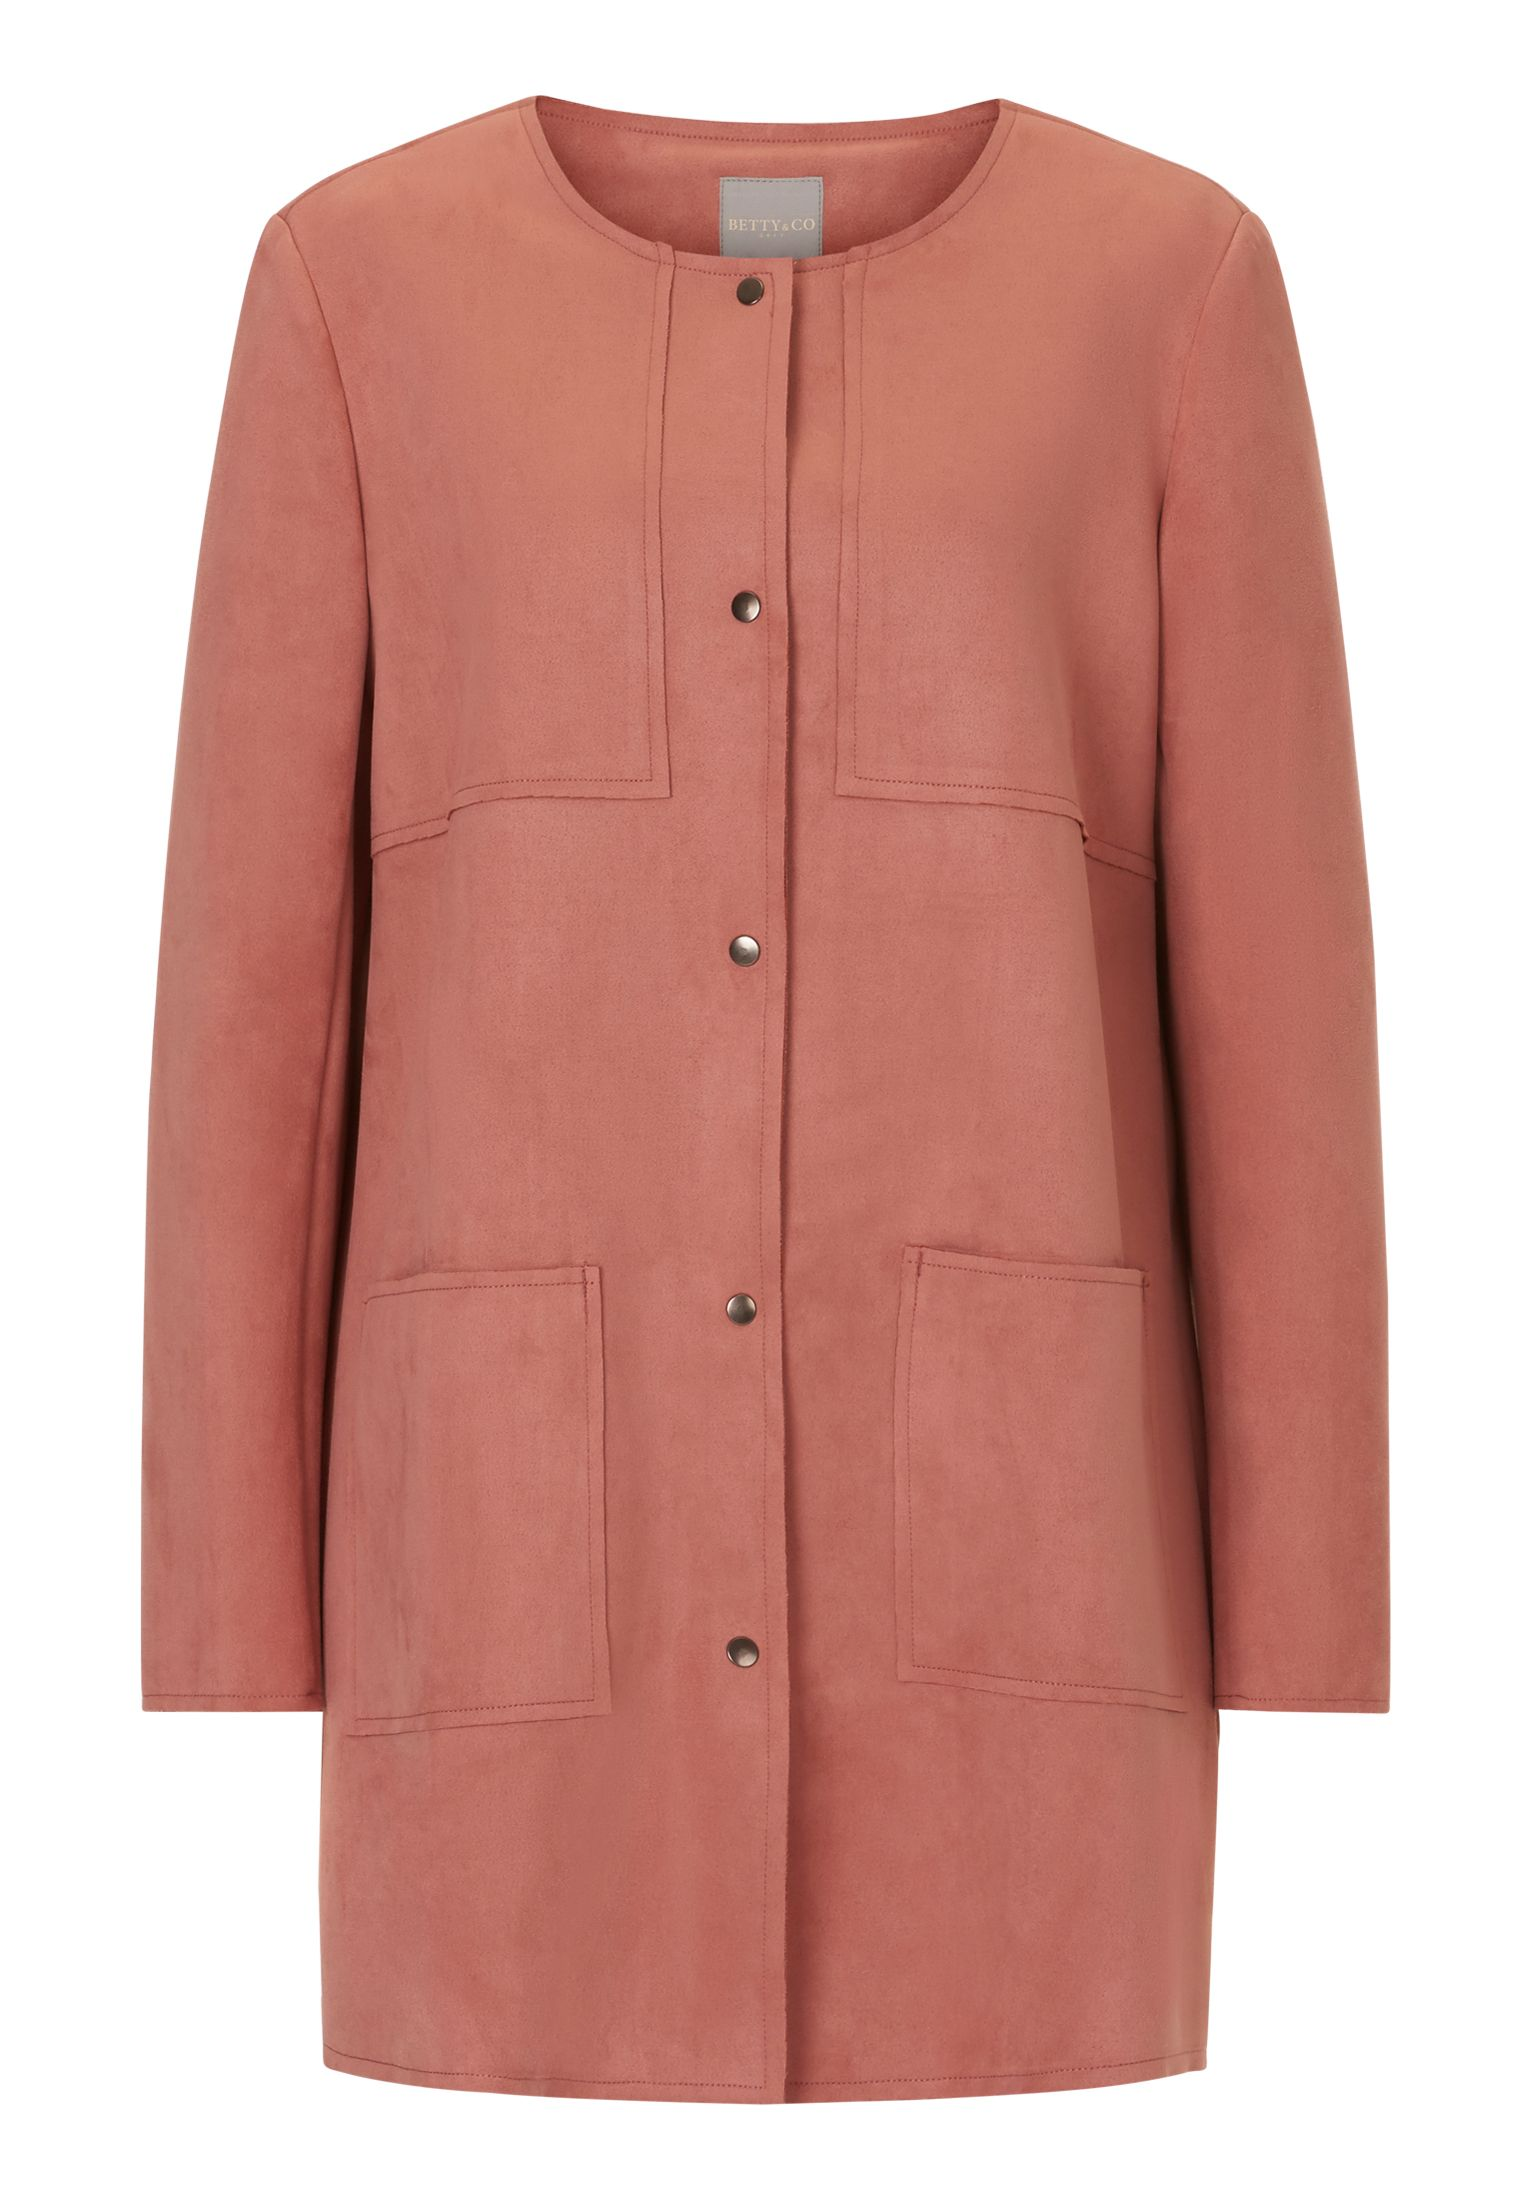 Betty & Co. Faux Suede Waterfall Jacket, Pink